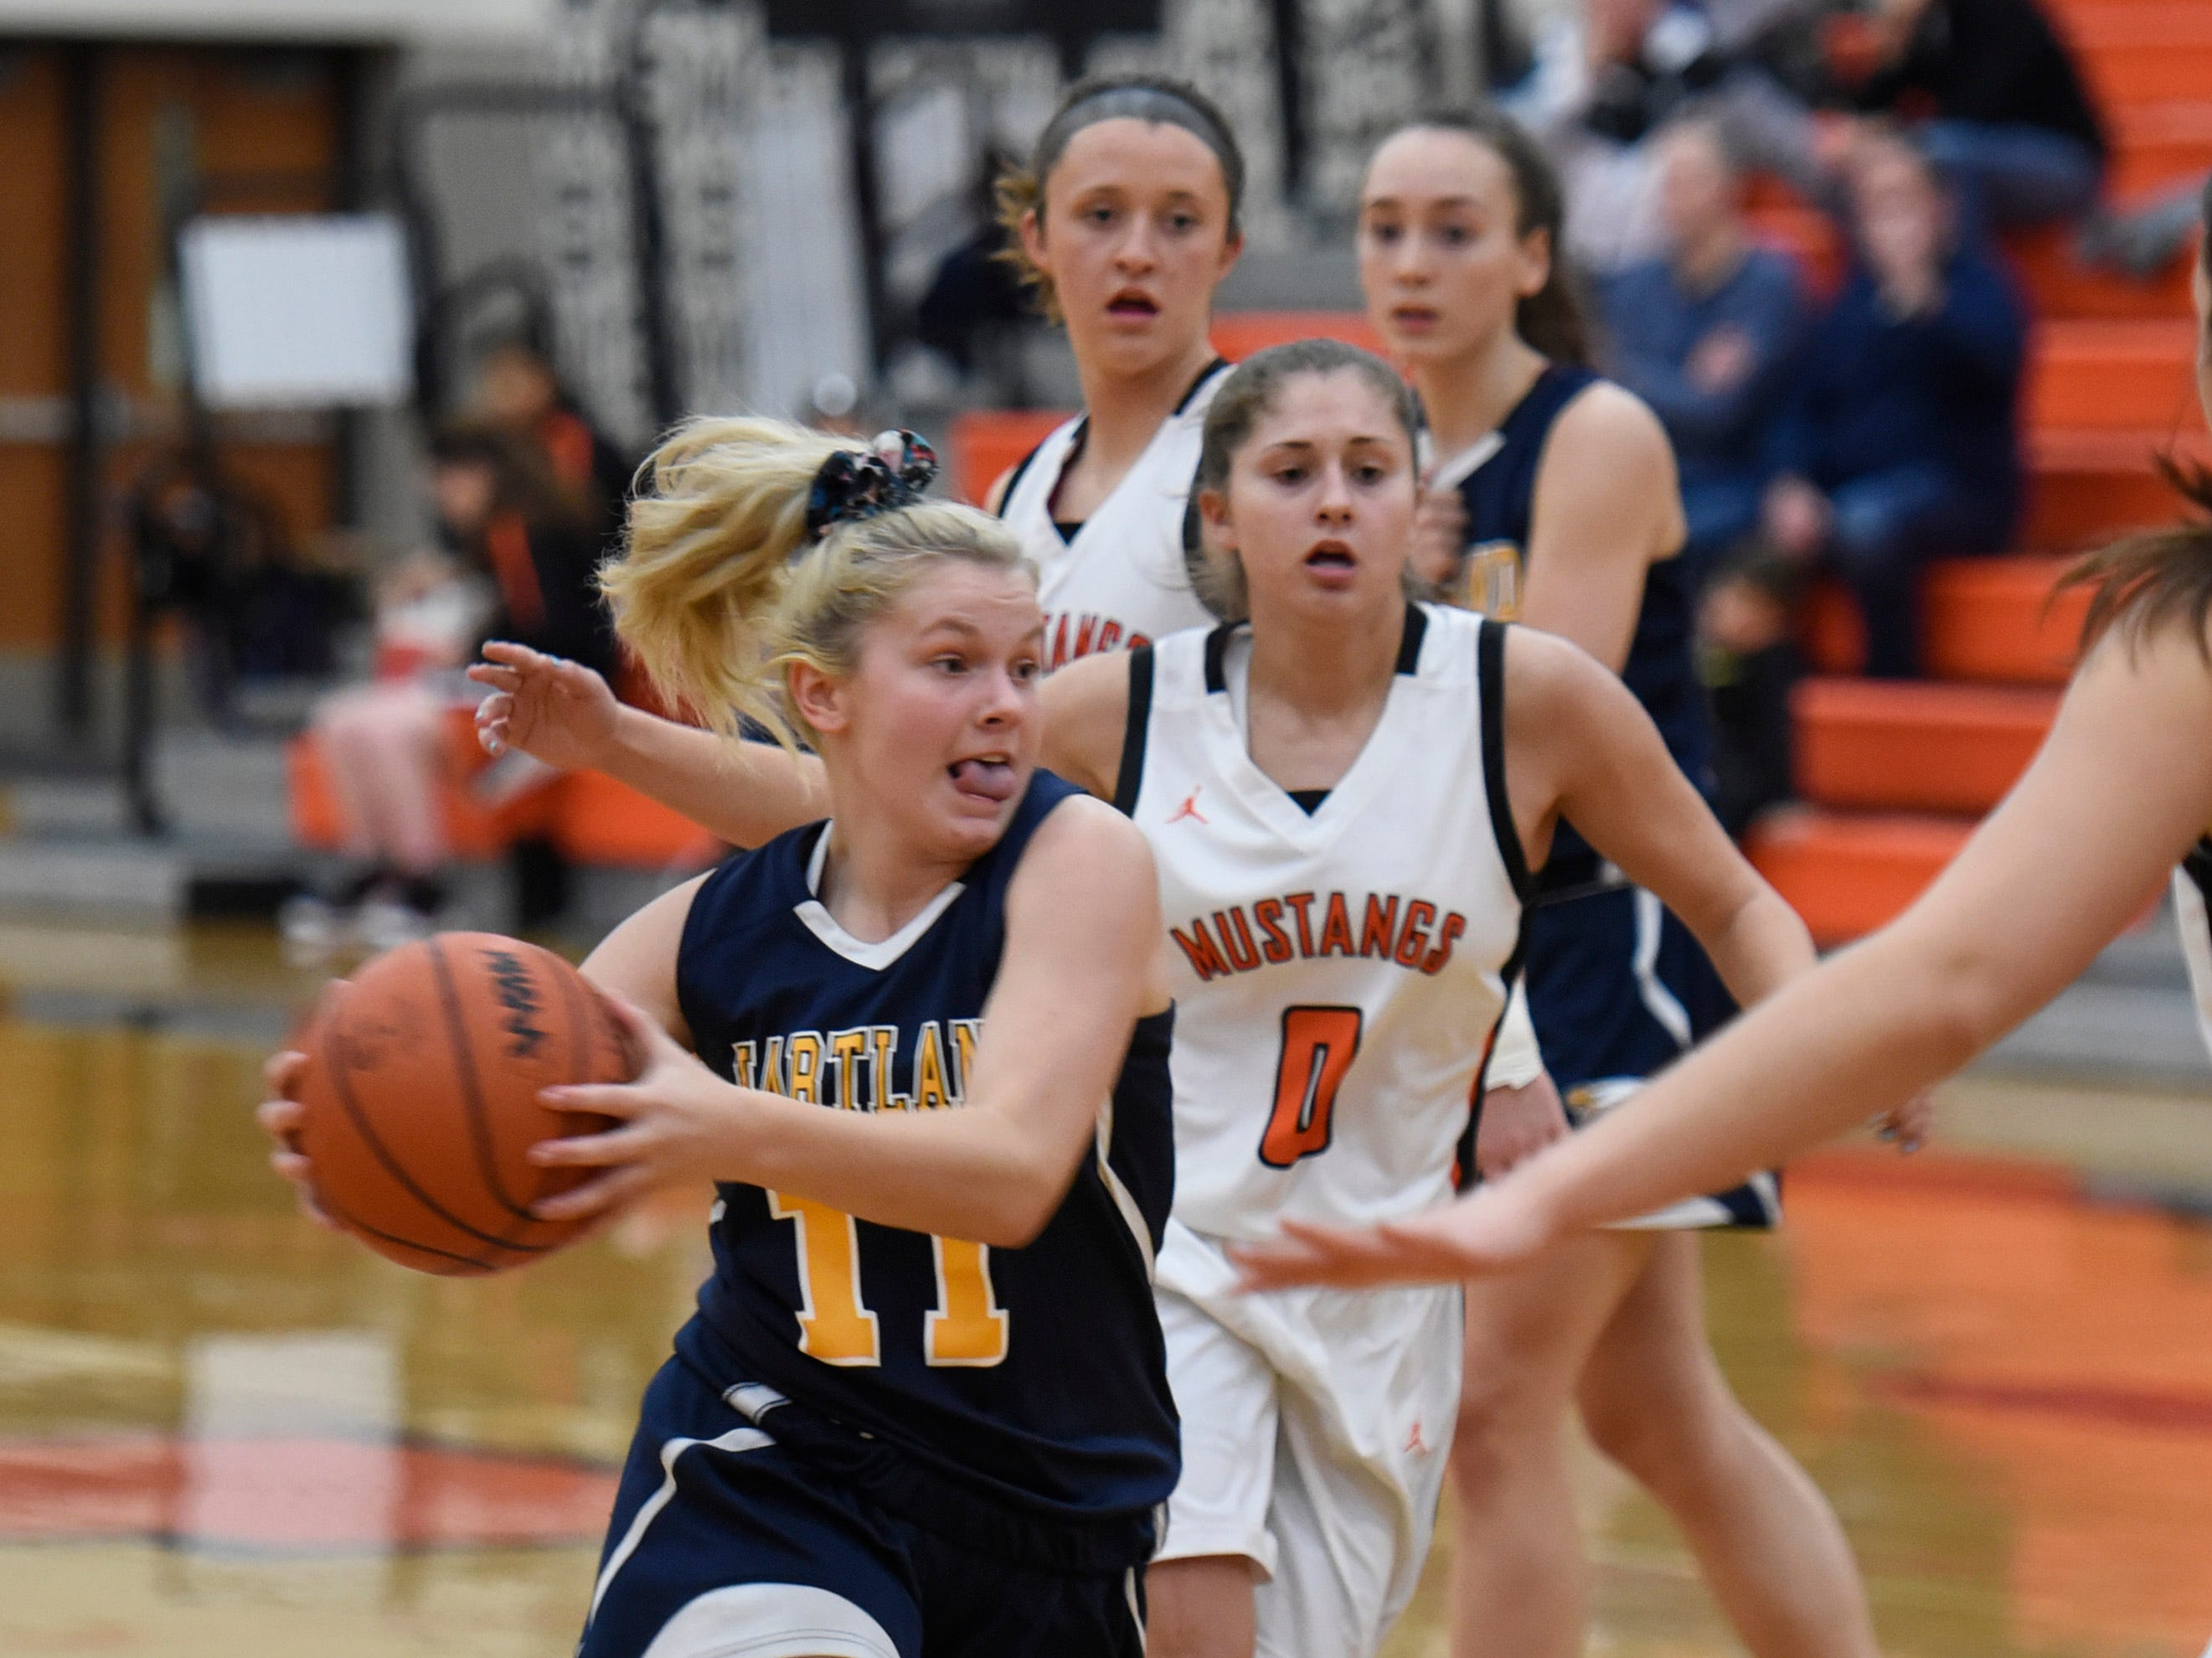 Hartland's Amanda Roach (11) during a KLAA match up between the Mustangs and Eagles at Northville Jan. 8, 2019